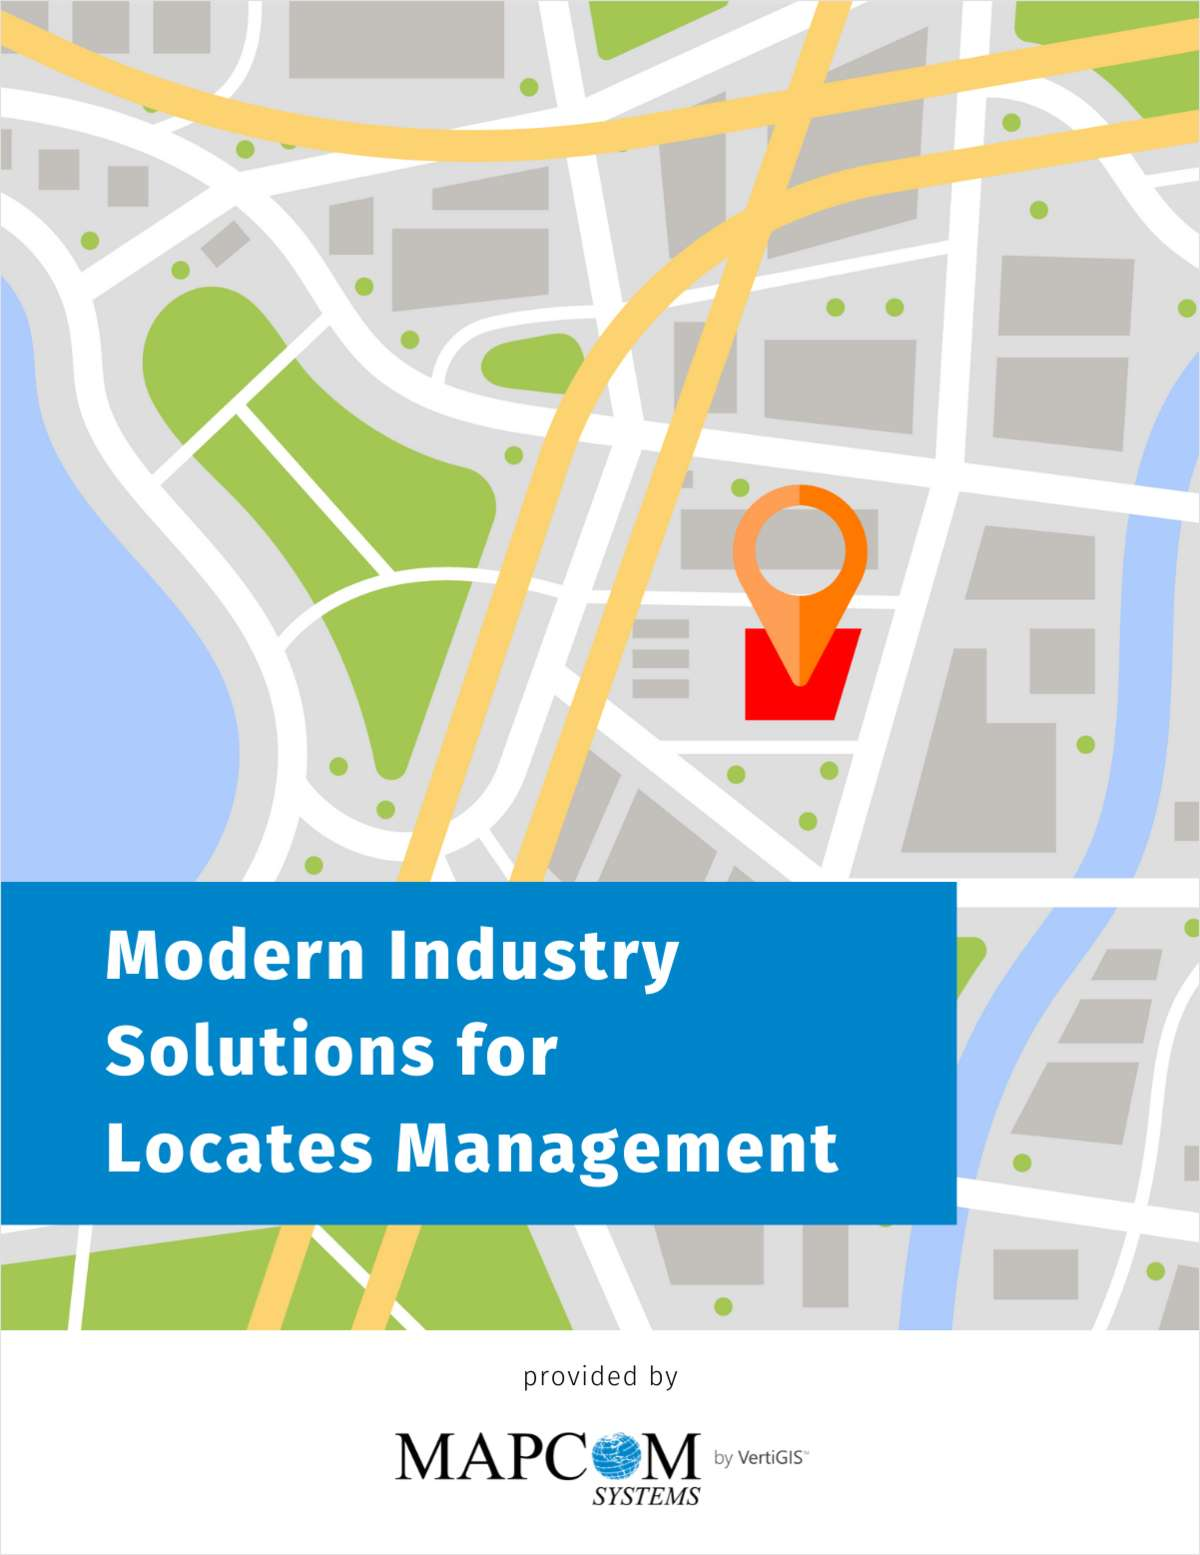 Modern Electric Co-Op Solutions for Locate Management